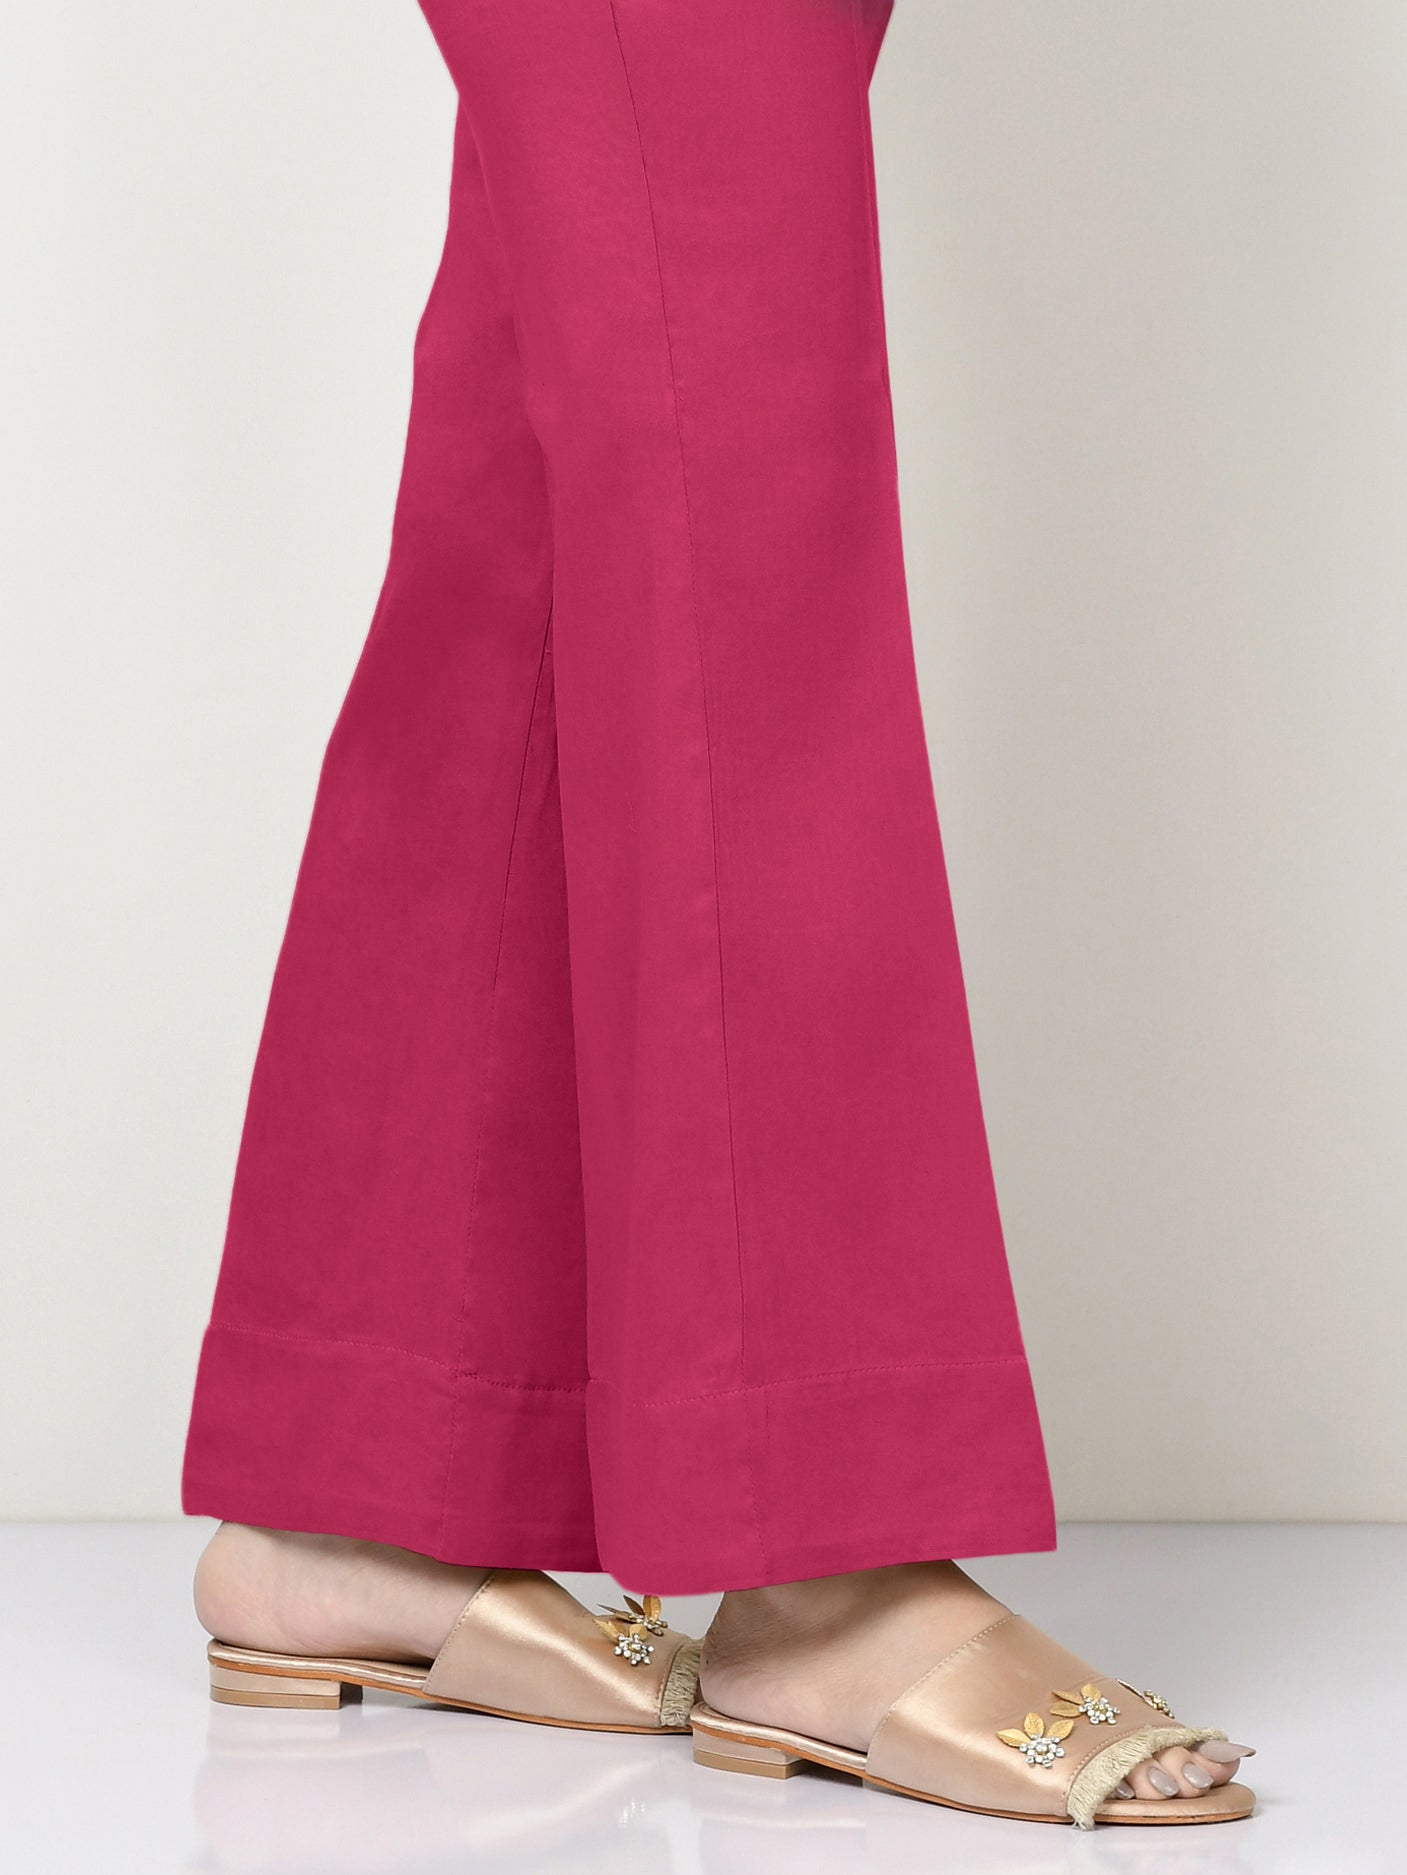 Unstitched Cambric Trouser - Ruby Pink